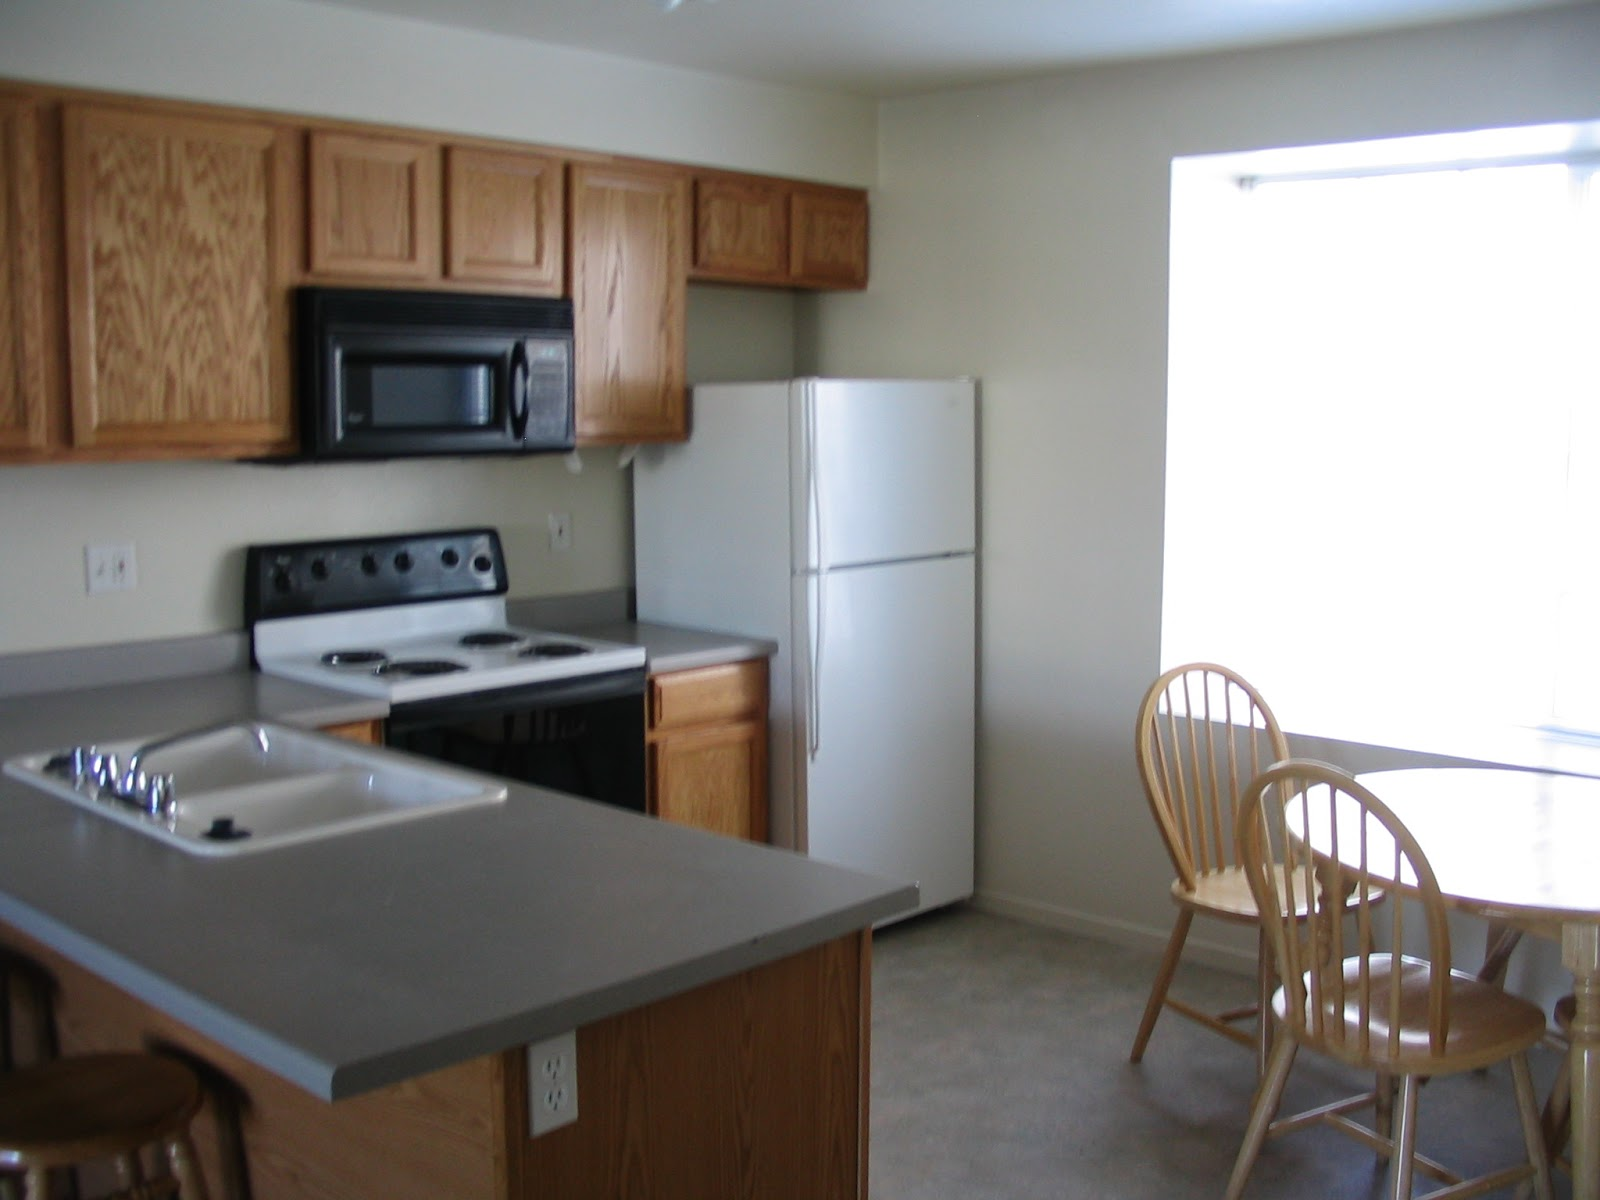 Our Kitchens Include Range And Oven Microwave Dishwasher Refrigerator Pantry Also Have A Table Four Chairs